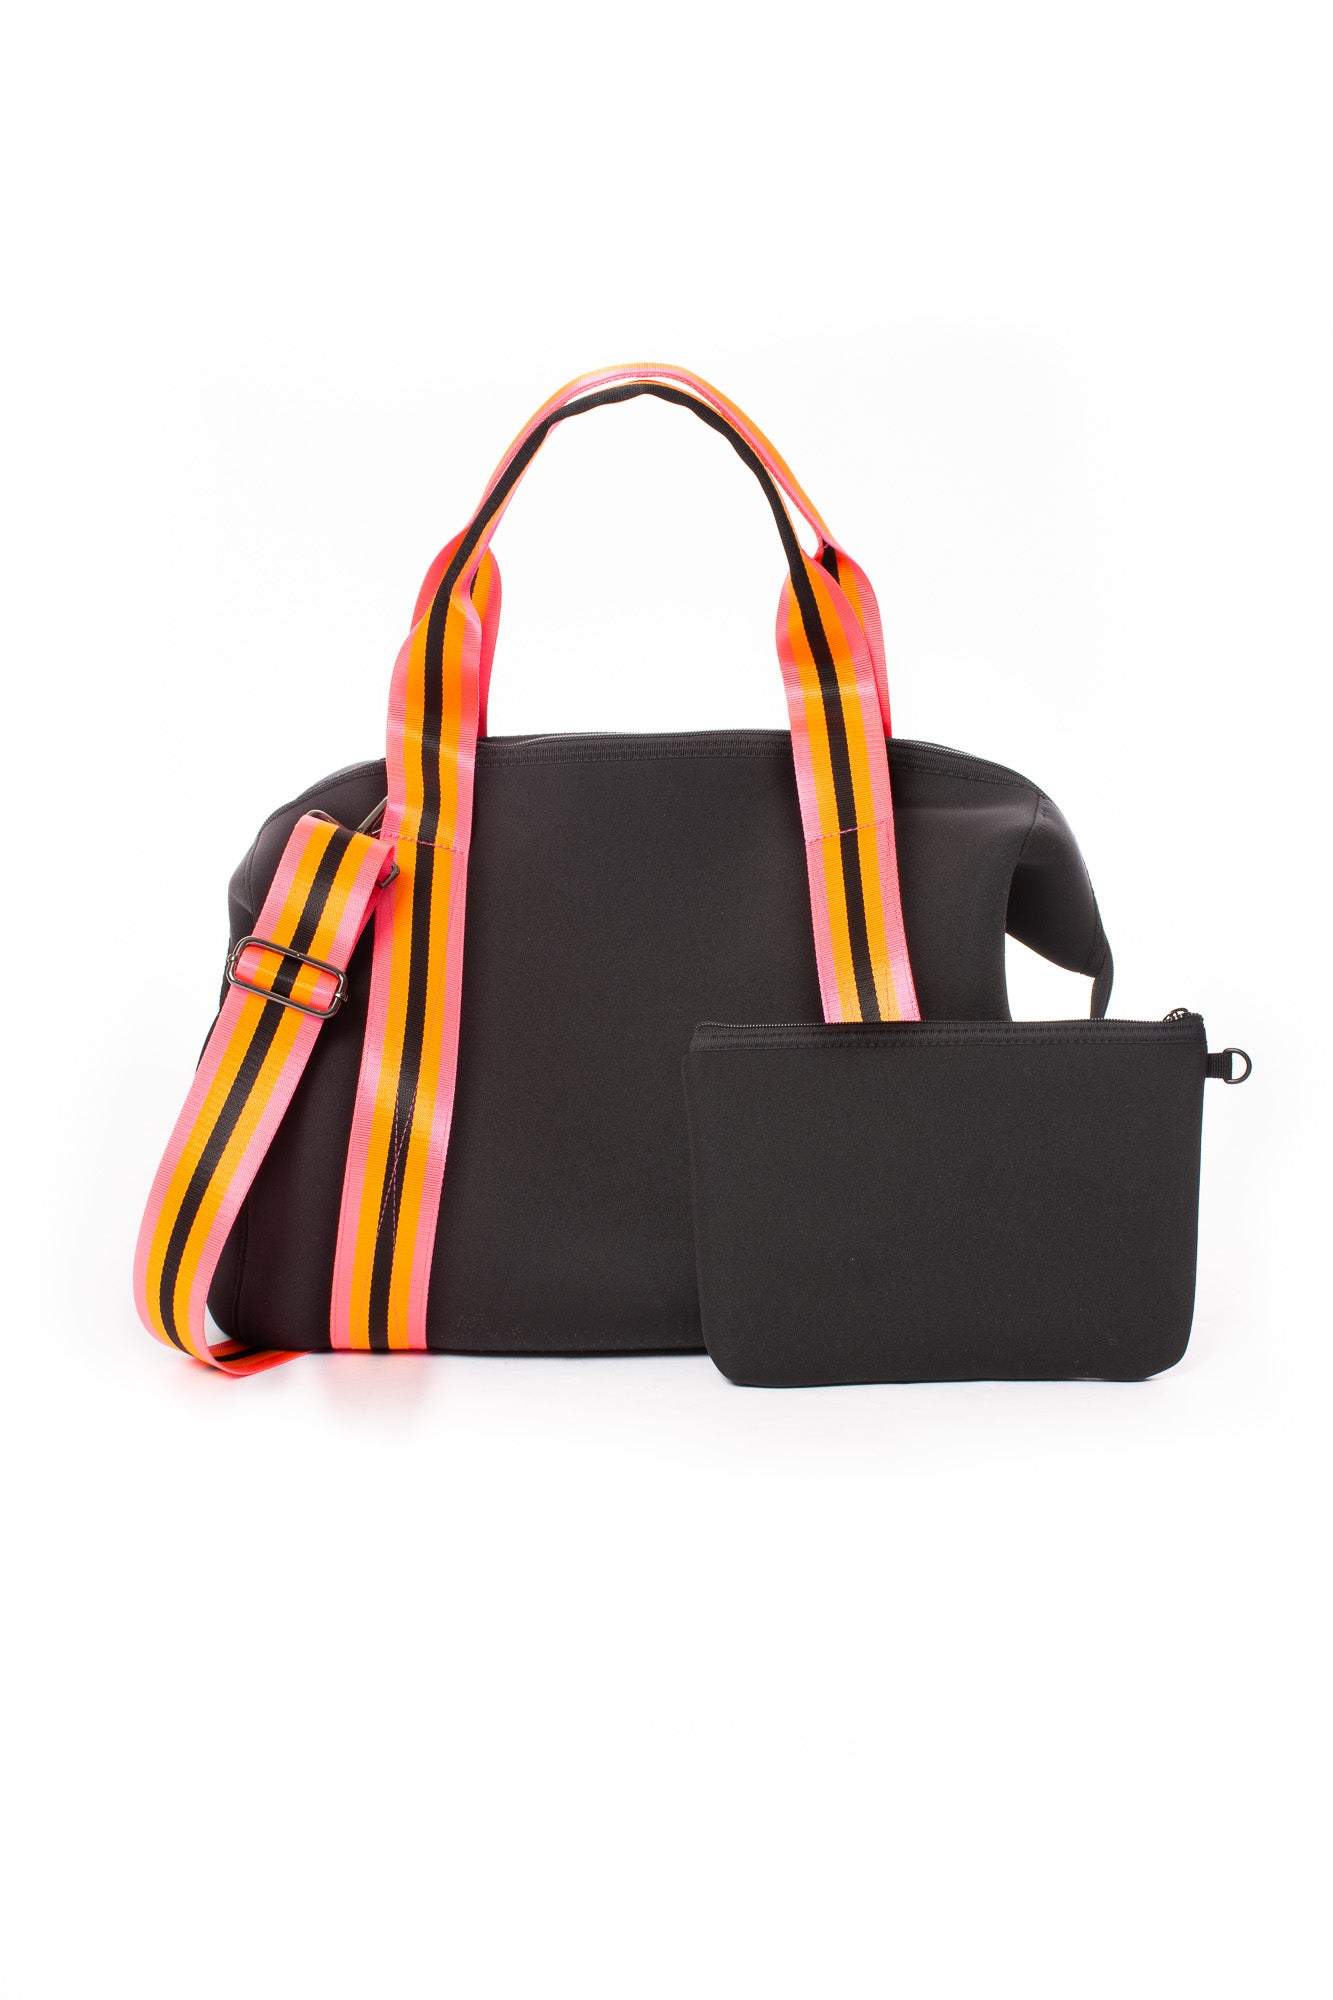 Haute Shore - Tour Weekender Bag (Morgan, Black w/Orange & Black Straps)